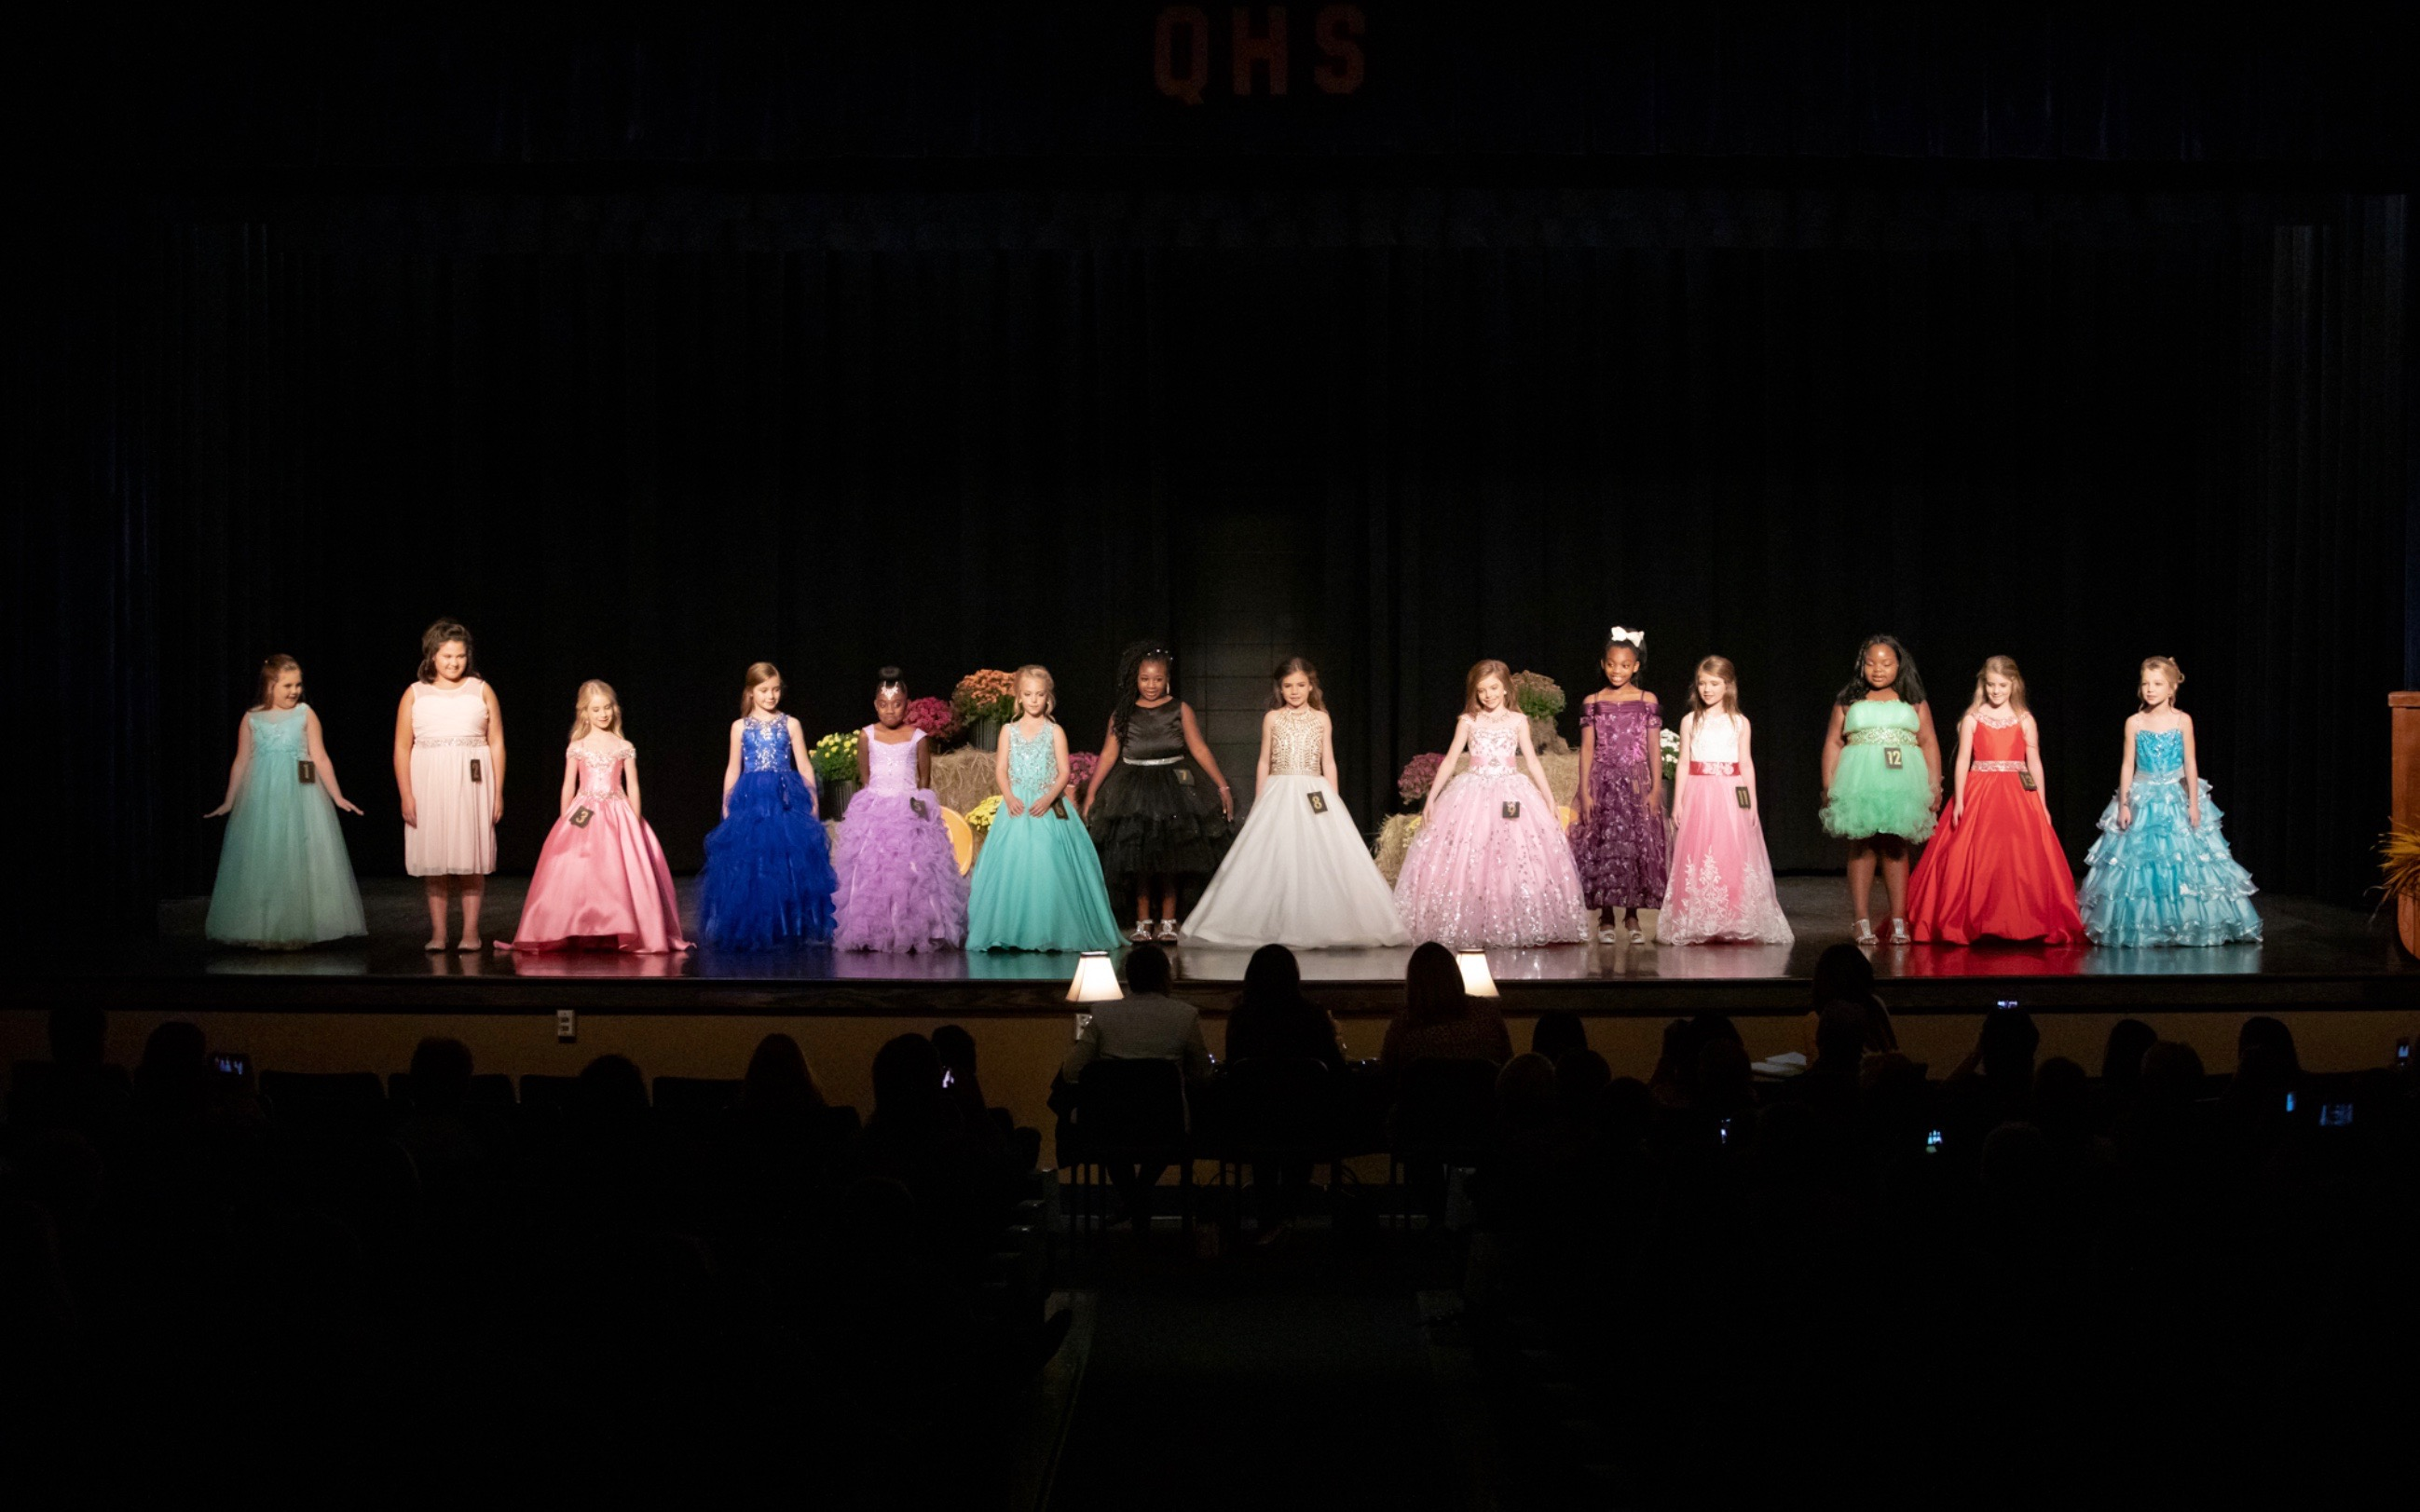 Pageant contestants pose on stage in QHS Auditorium.